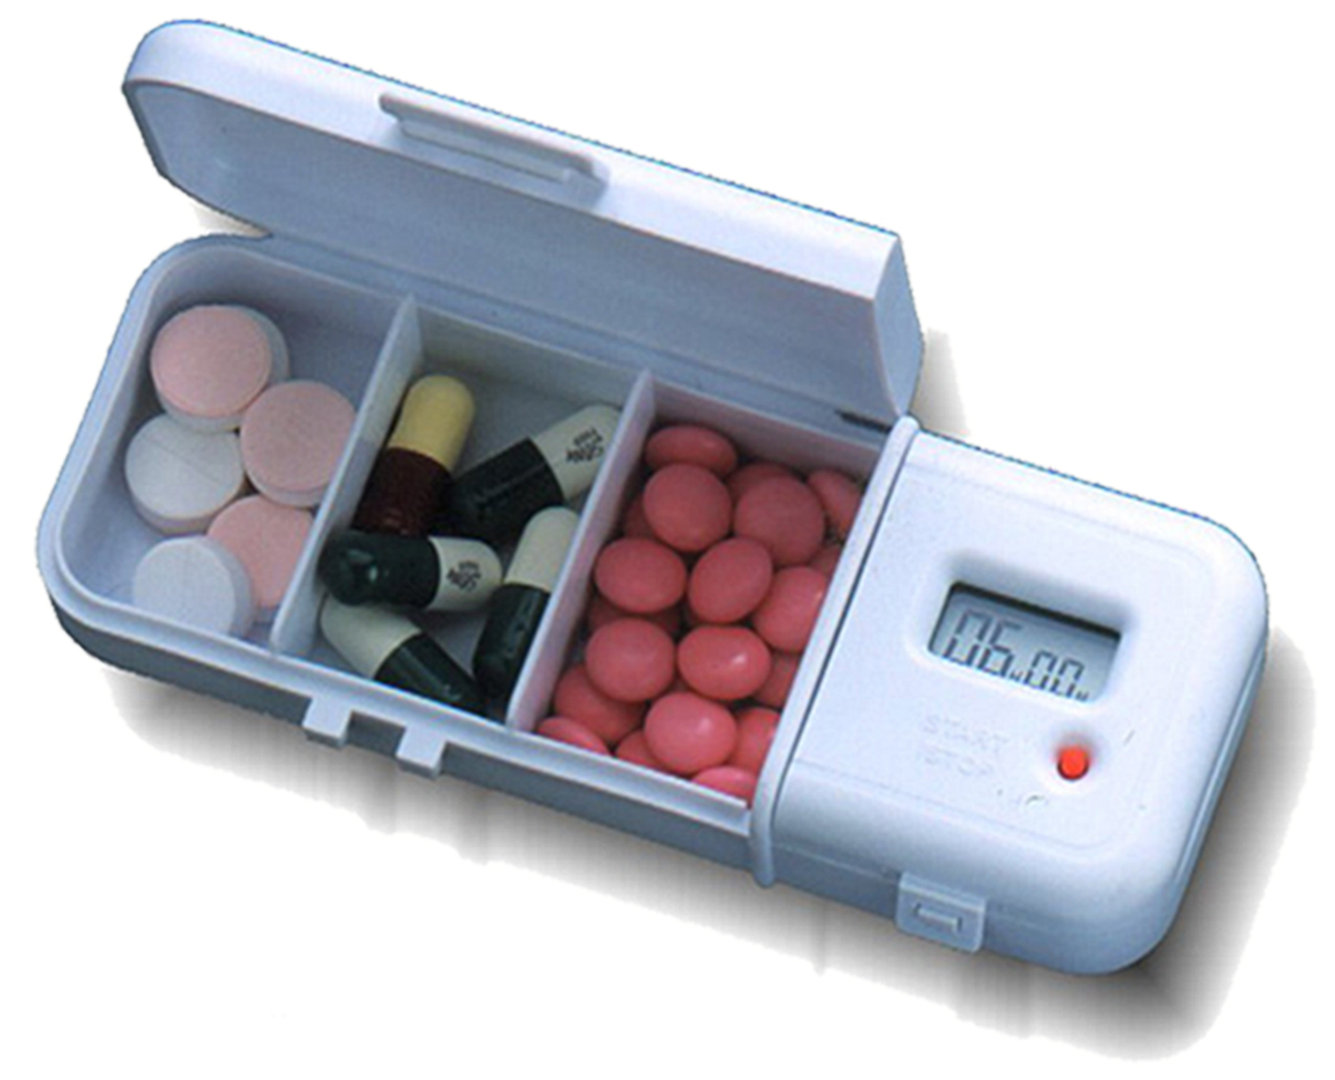 Pill Box Reminder Tabtimer Tt4 3 Electronic Pill Box Alarm